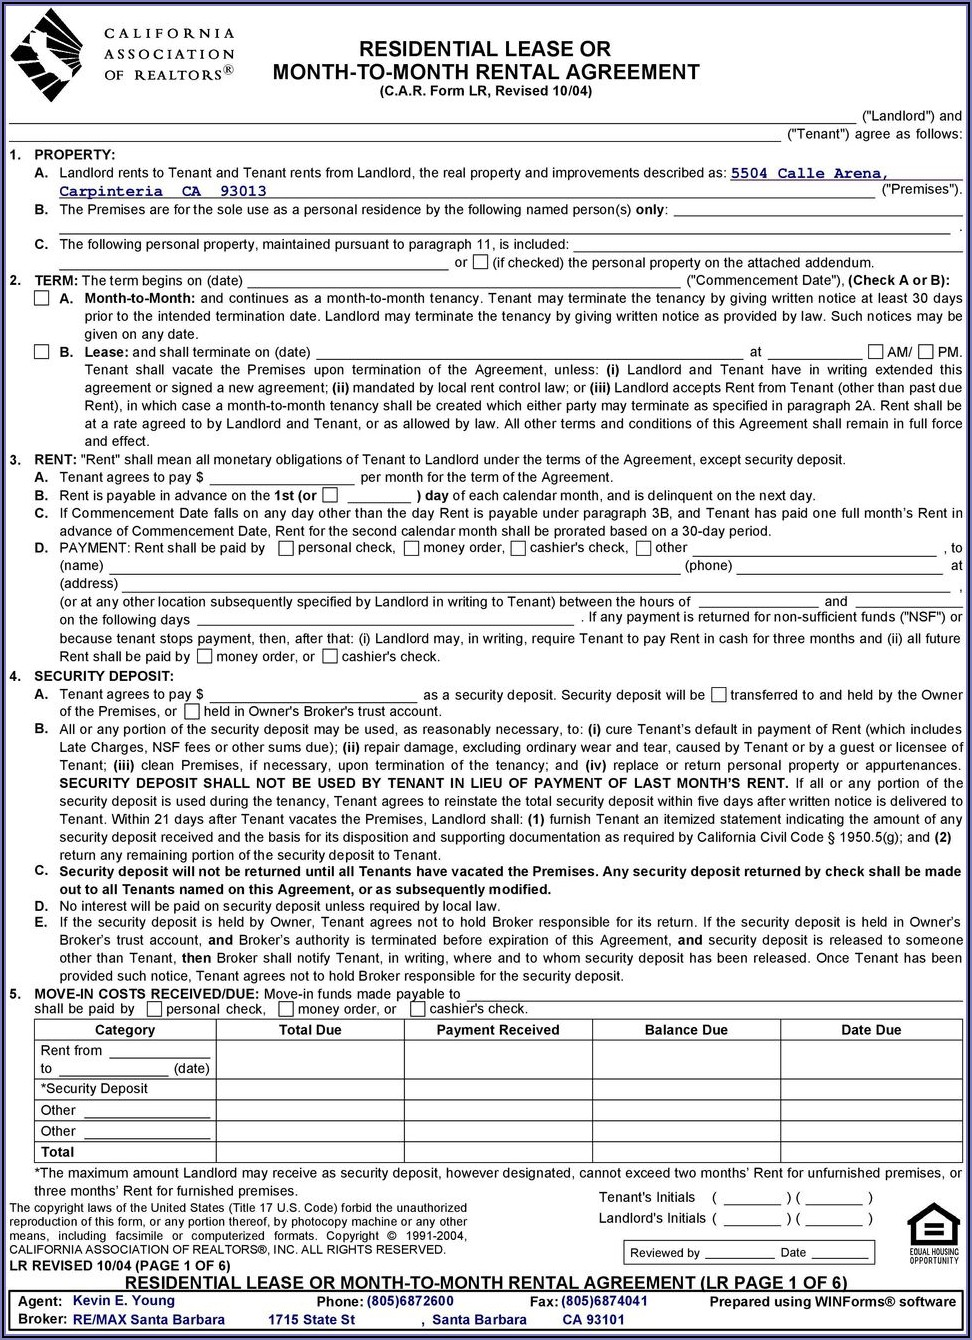 California Association Of Realtors Residential Lease Or Month To Month Rental Agreement Form